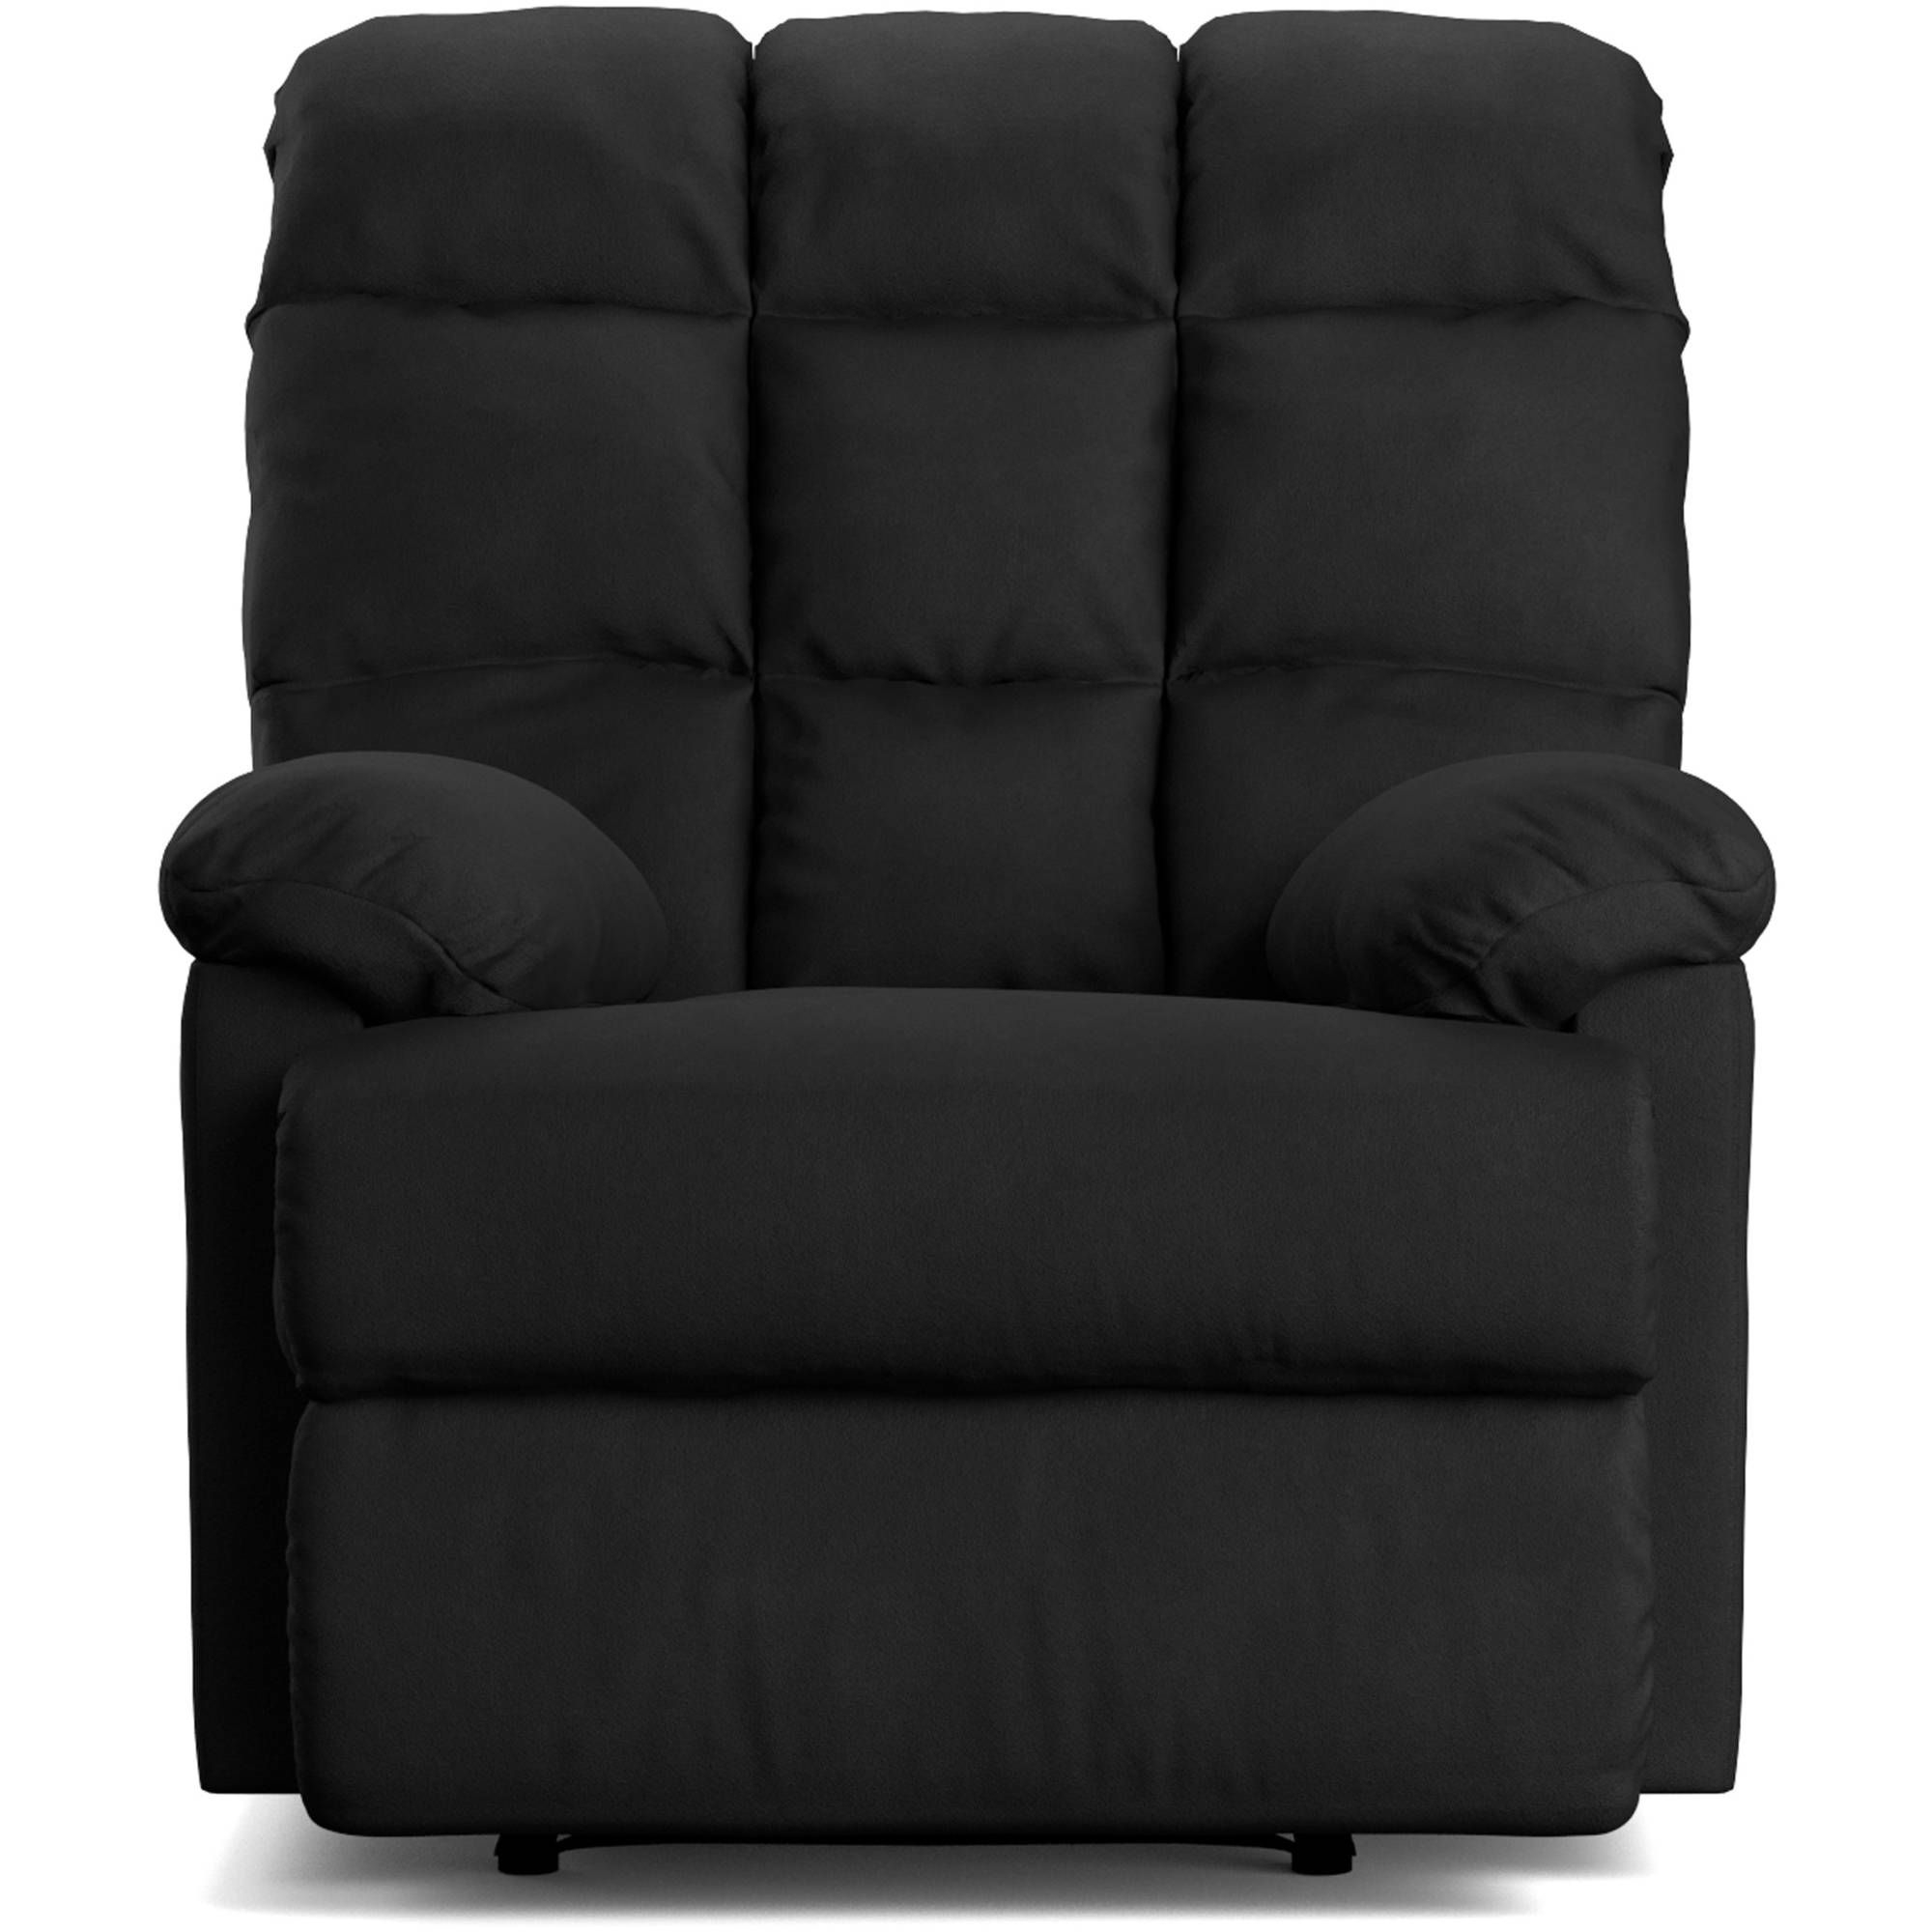 Living Room Recliner Chair Reclining Sofa Home High Back Footrest Legrest Black 894273030990  Ebay